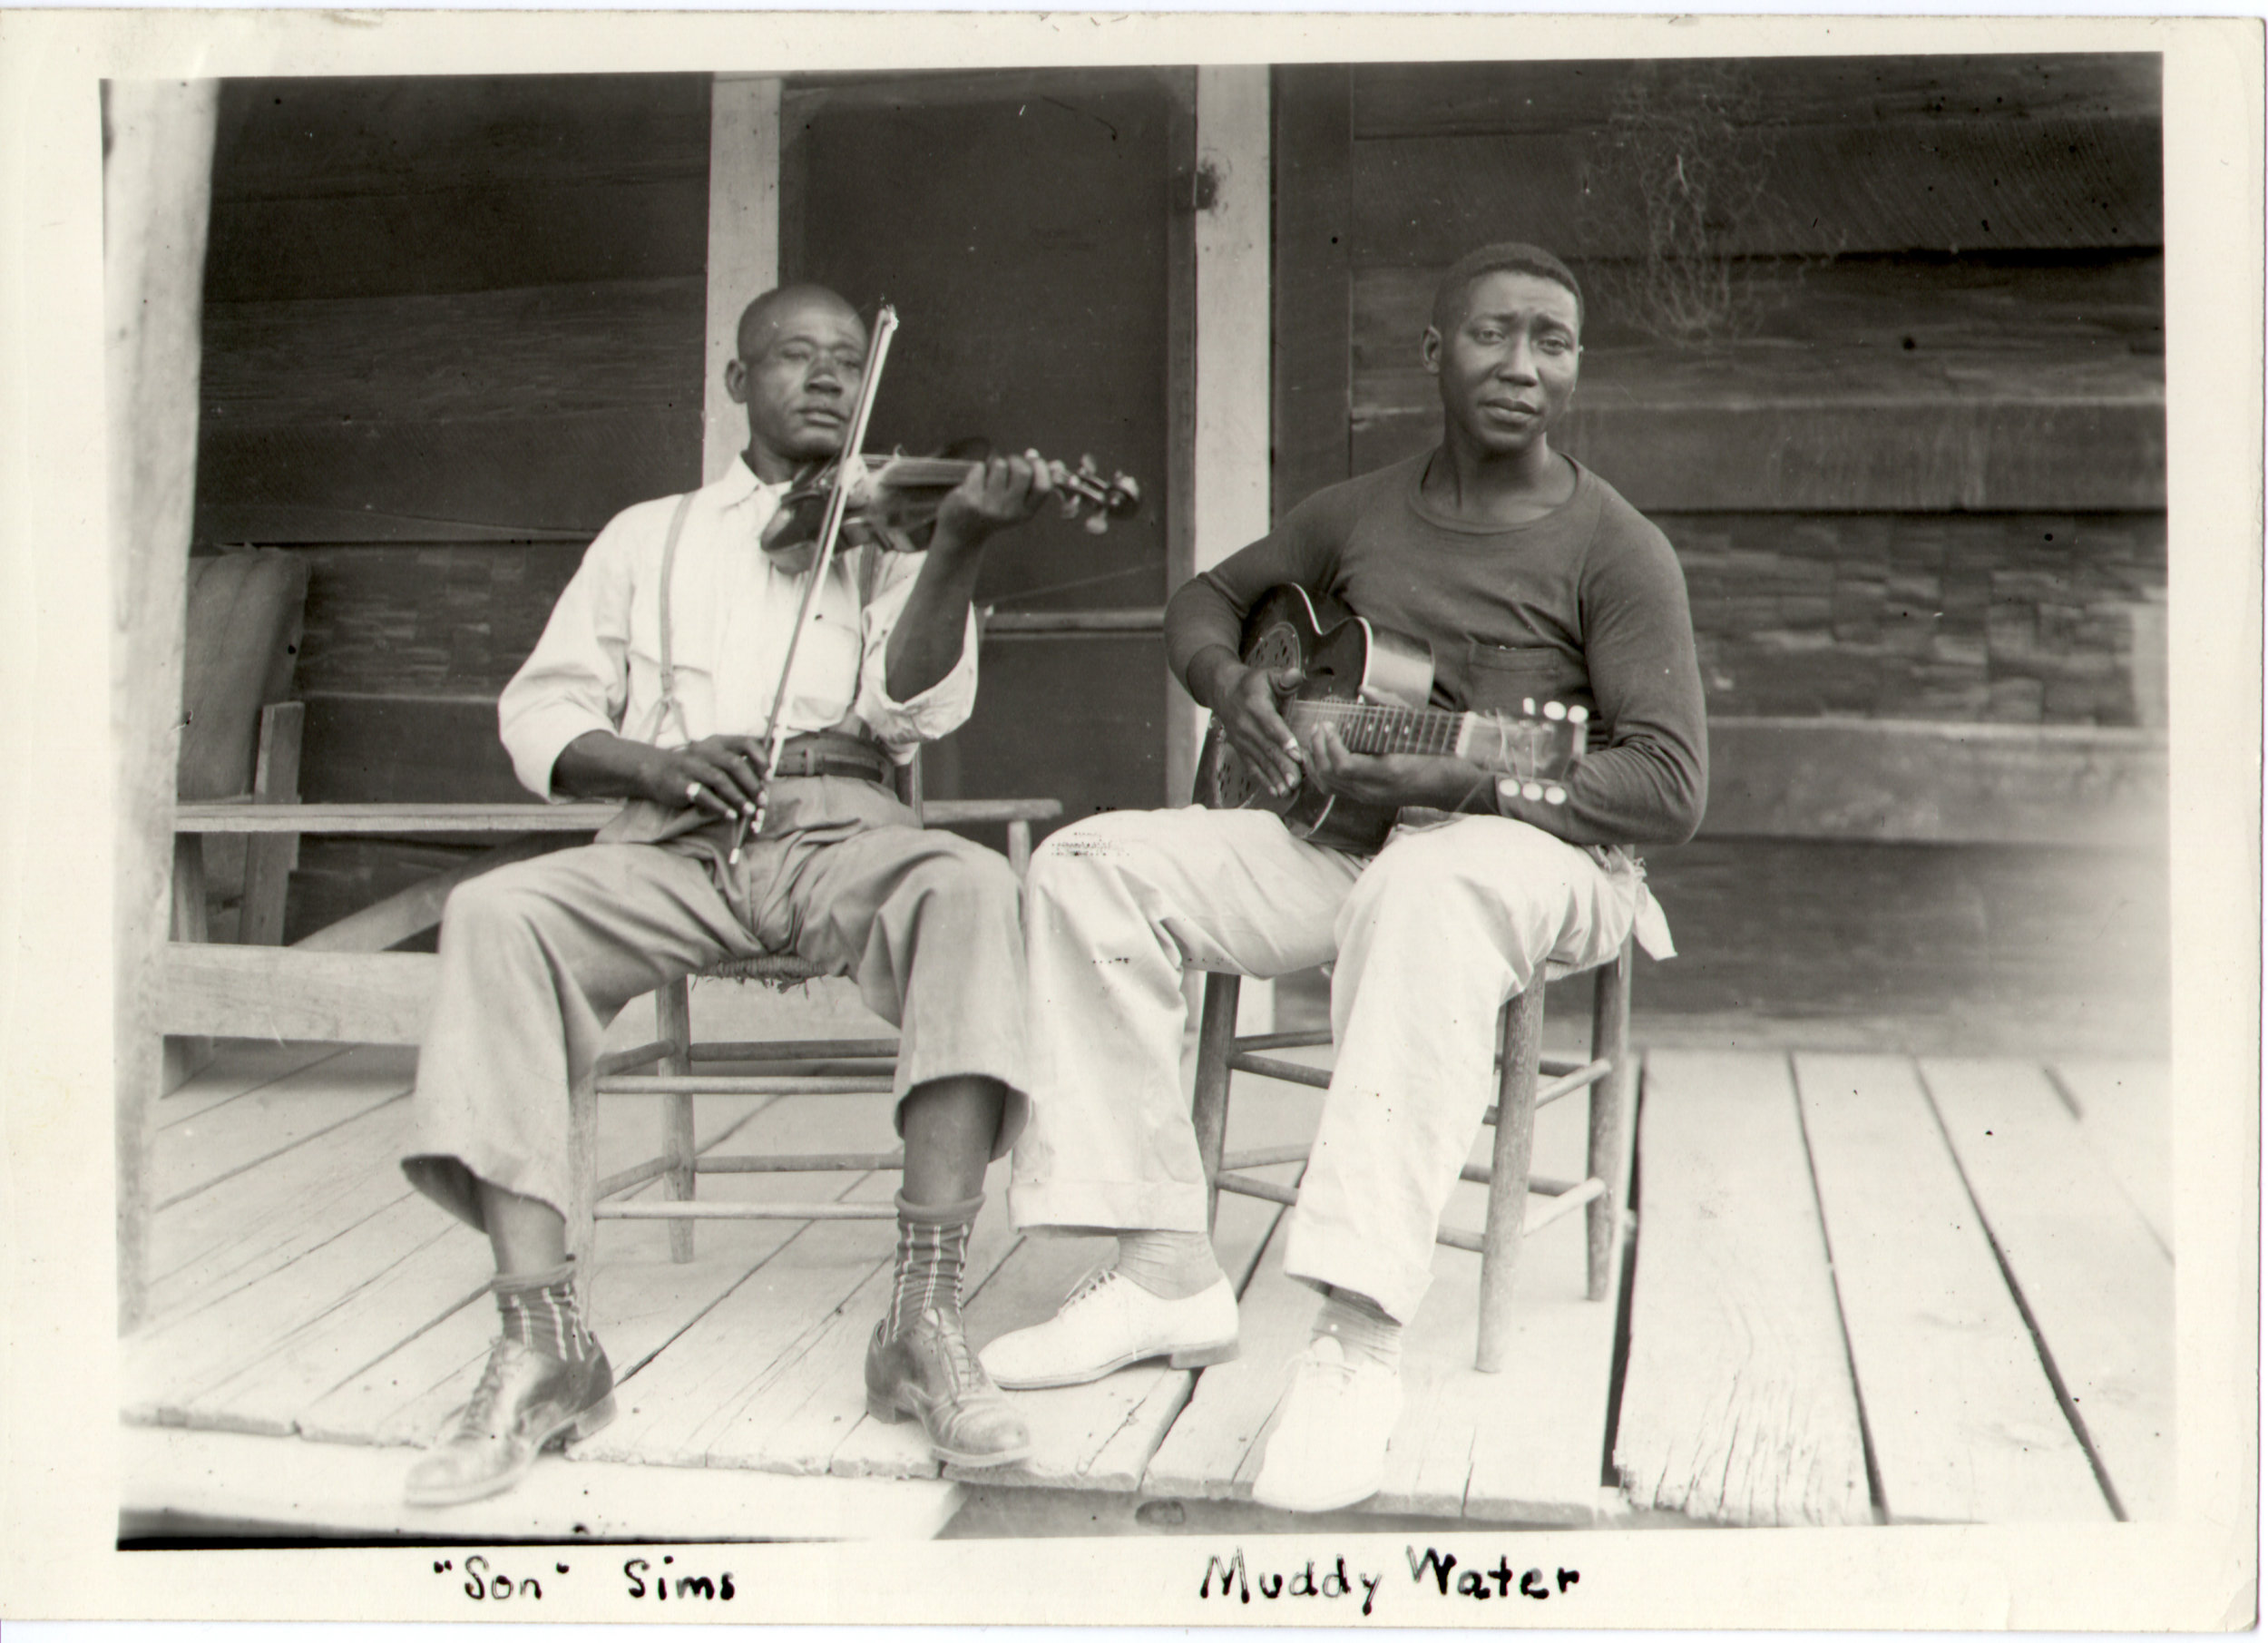 Son_Sims_and_Muddy_Waters_1942.jpg